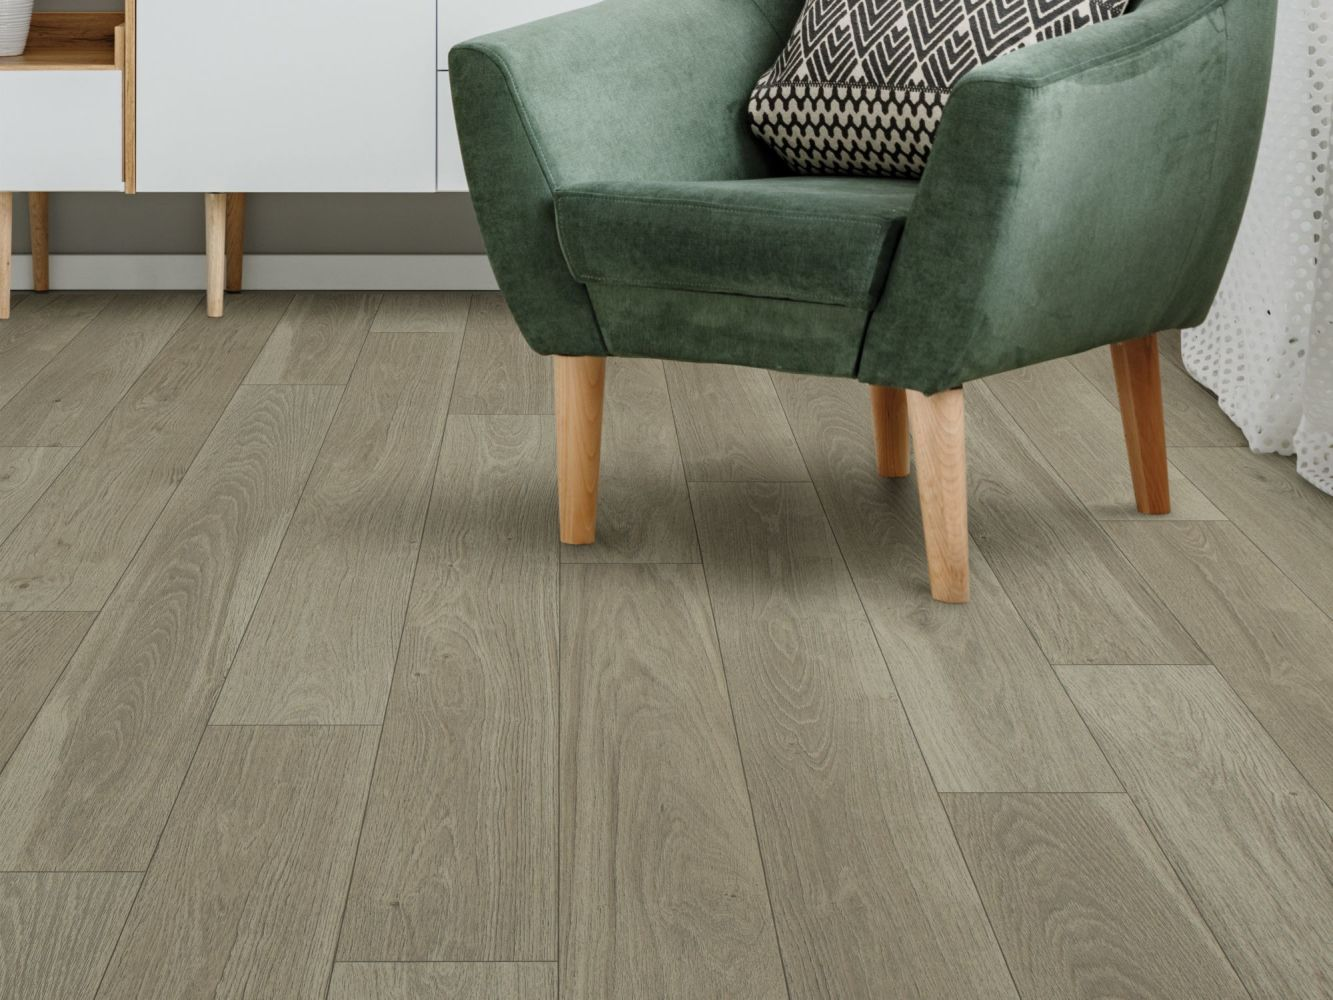 Shaw Floors Resilient Residential Sublime Vision Perseus 05095_VG090